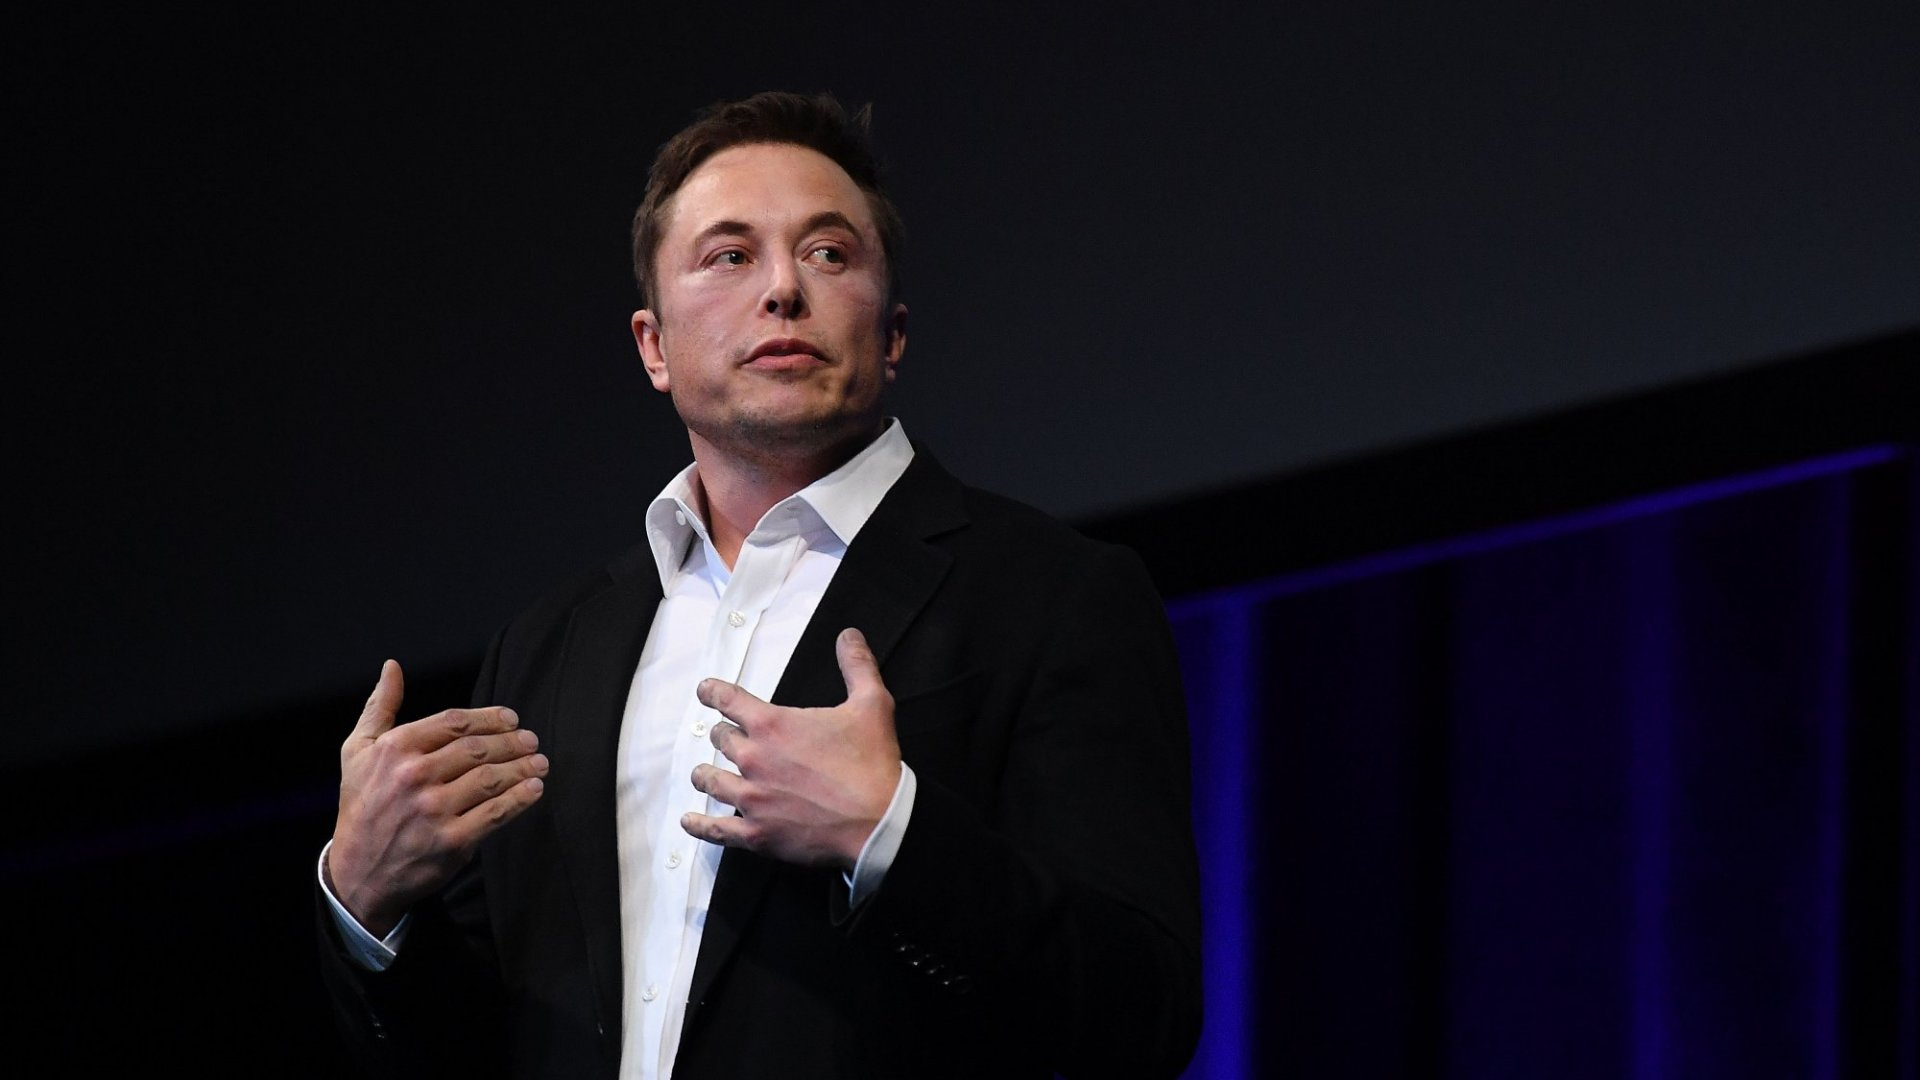 Elon Musk Just Proved That (for Now) Tesla's Performance Still Matters More Than His Own